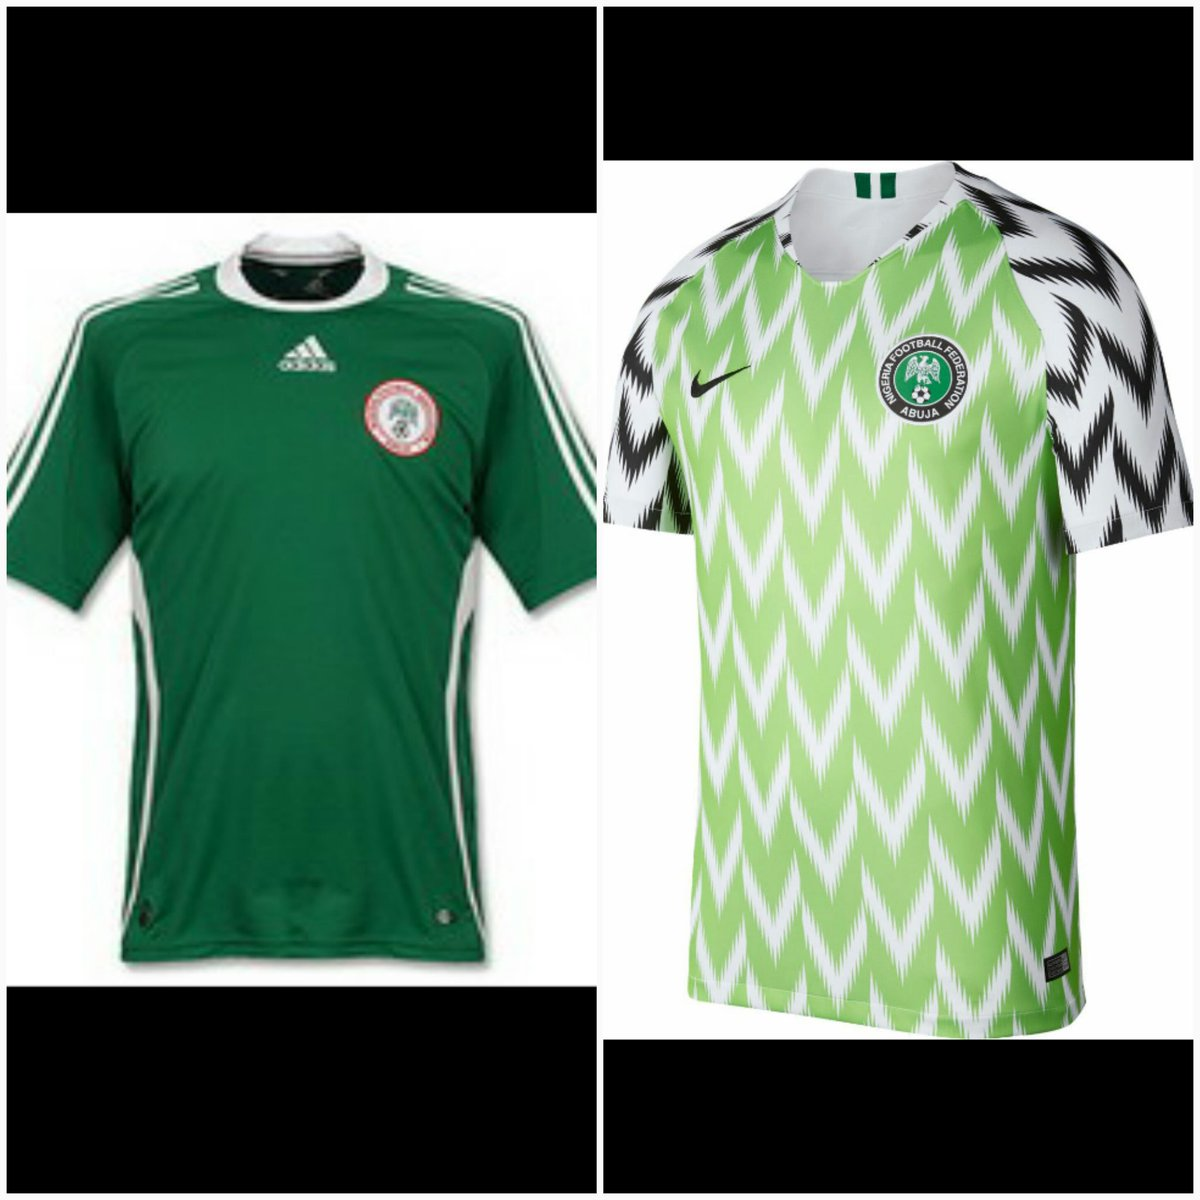 The Nigerian Football jersey too wasn't spared in the #10yearschallenge New patterns,new designs.. Patronize us for your Original pocket friendly Jerseys for both clubs and Country #jersey #sports #giftshop #jerseystores  #premiereleague #giftideas #gifts #10yearschallenge